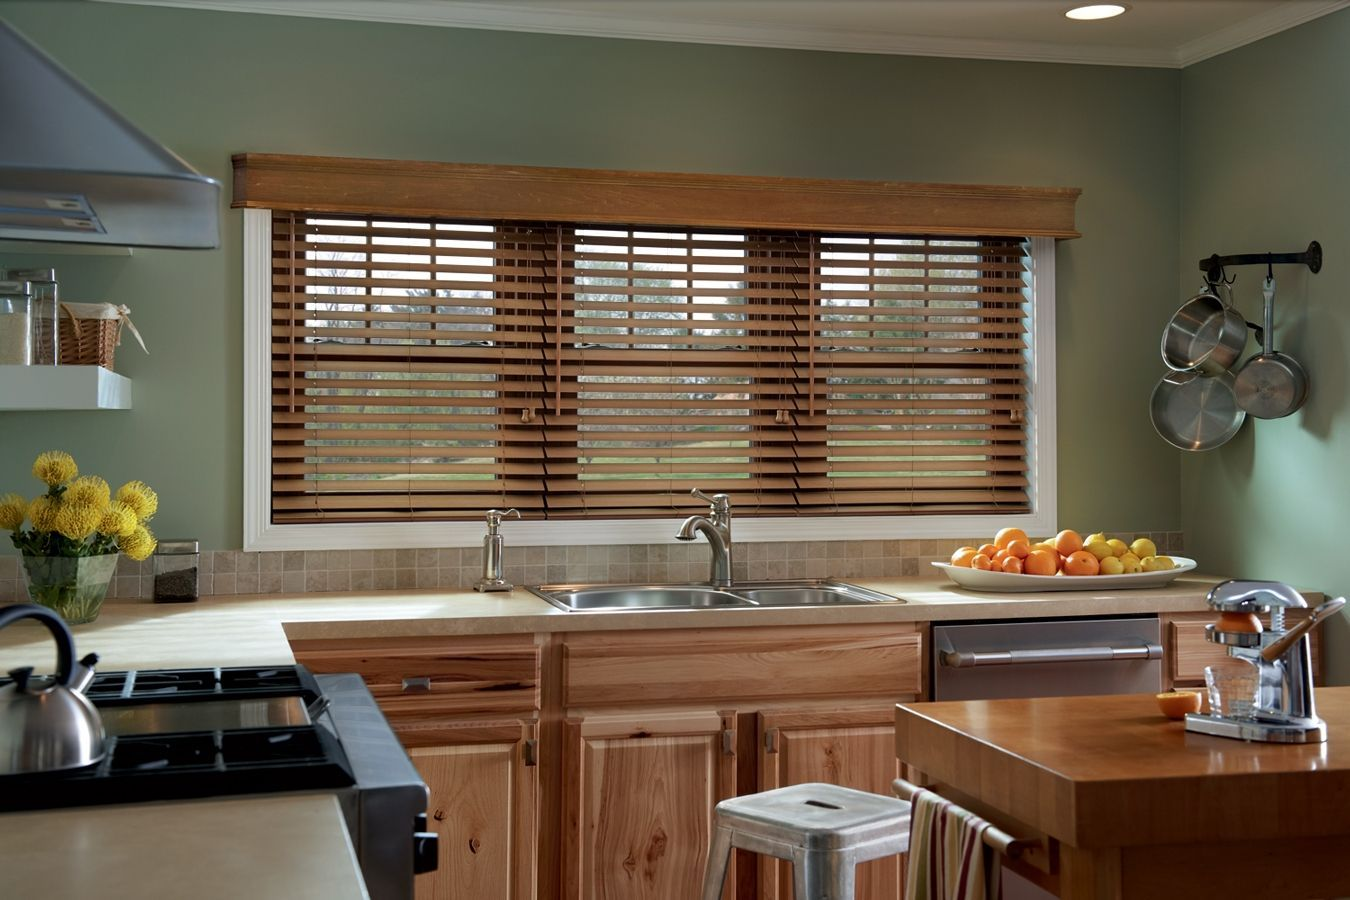 Window coverings types  modern kitchen blinds types tedxumkc decoration throughout sizing